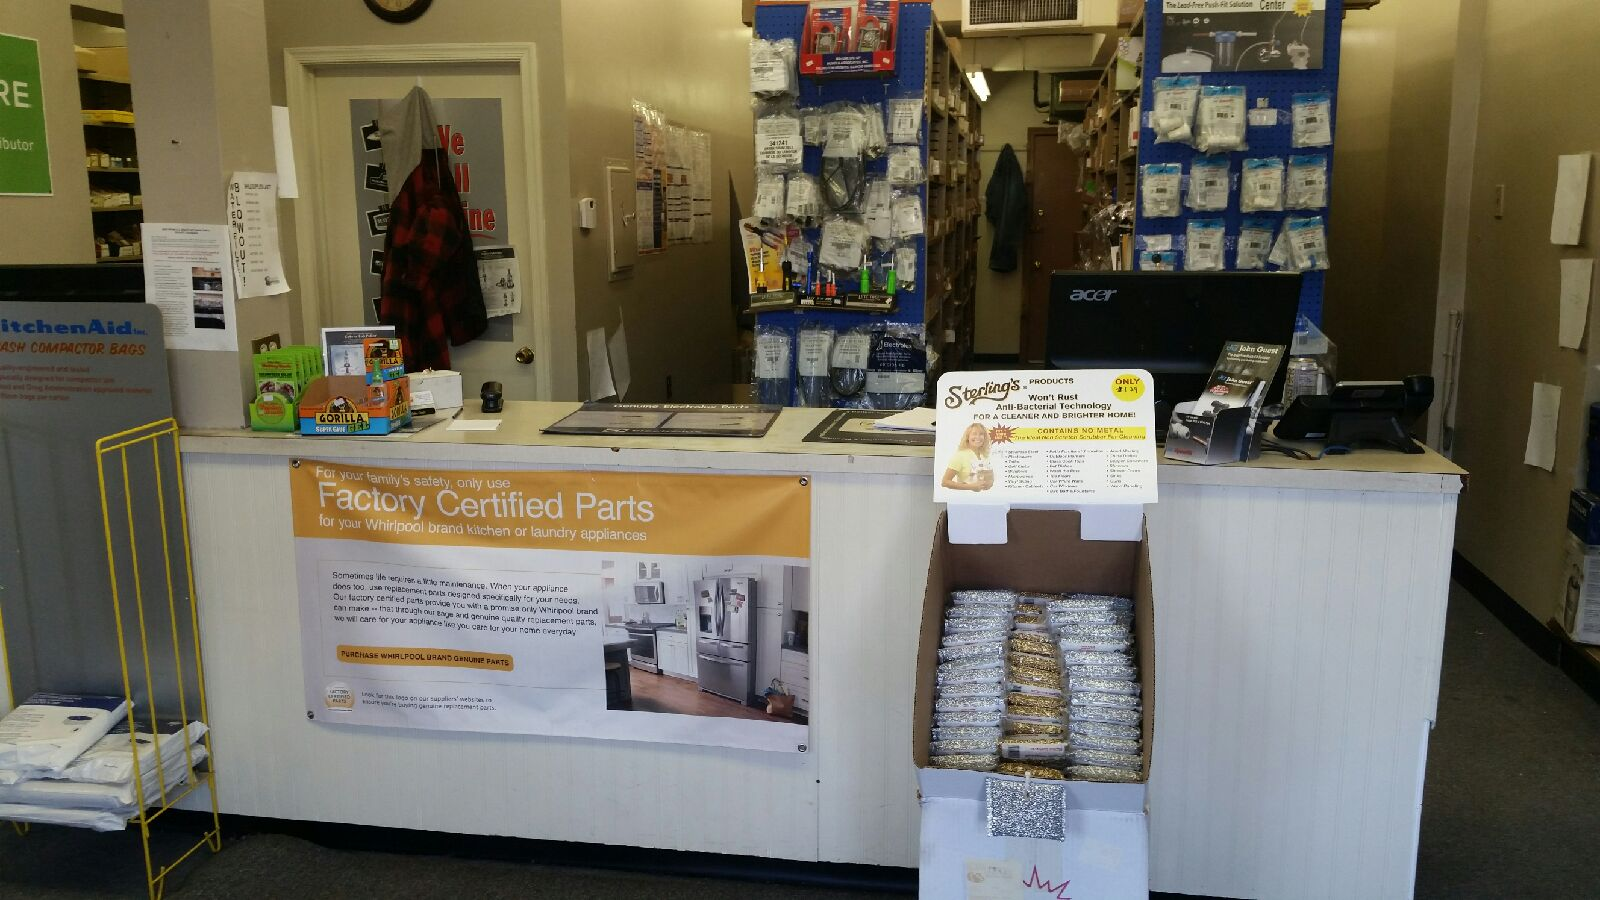 A picture of the Havertown, PA counter area.